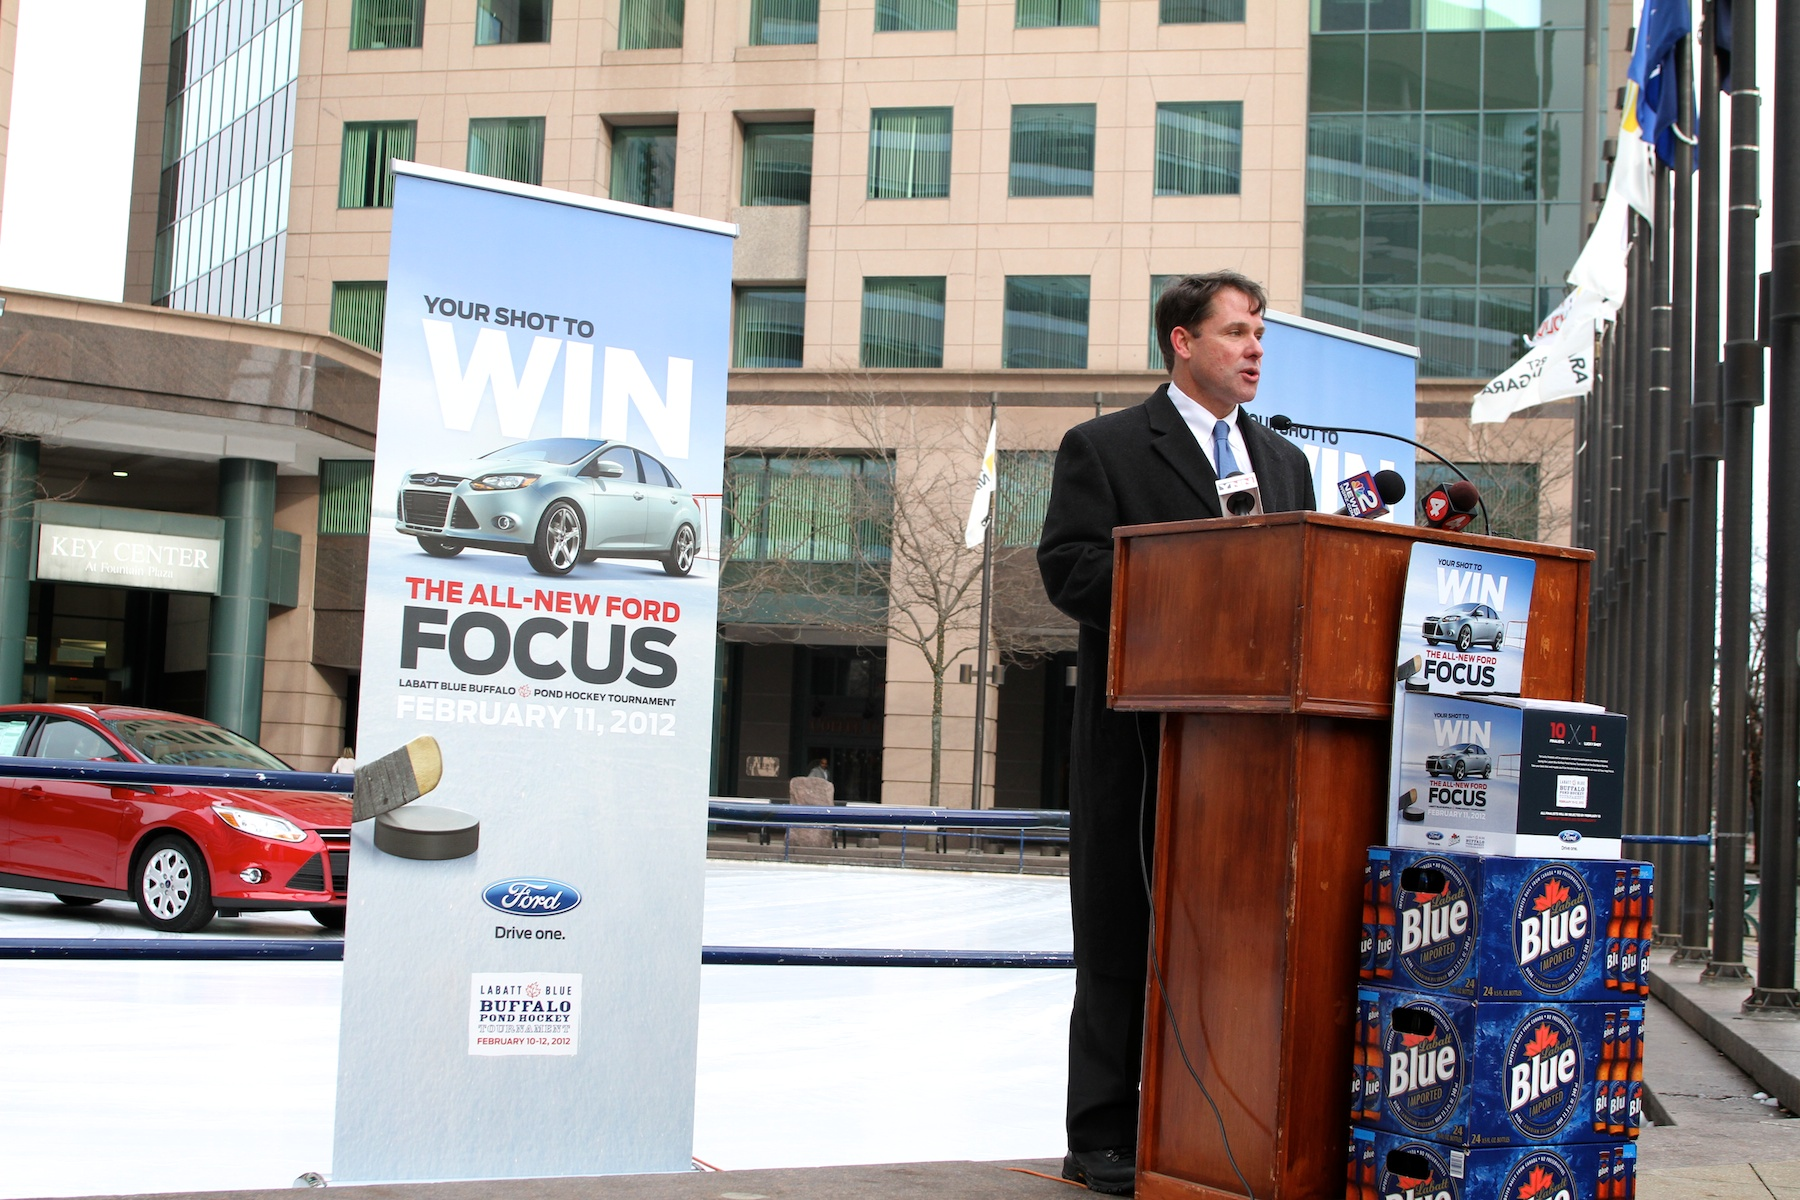 WNY Ford Dealers' Frank Downing announces details of 2012 Ford Focus Hockey Shootout.